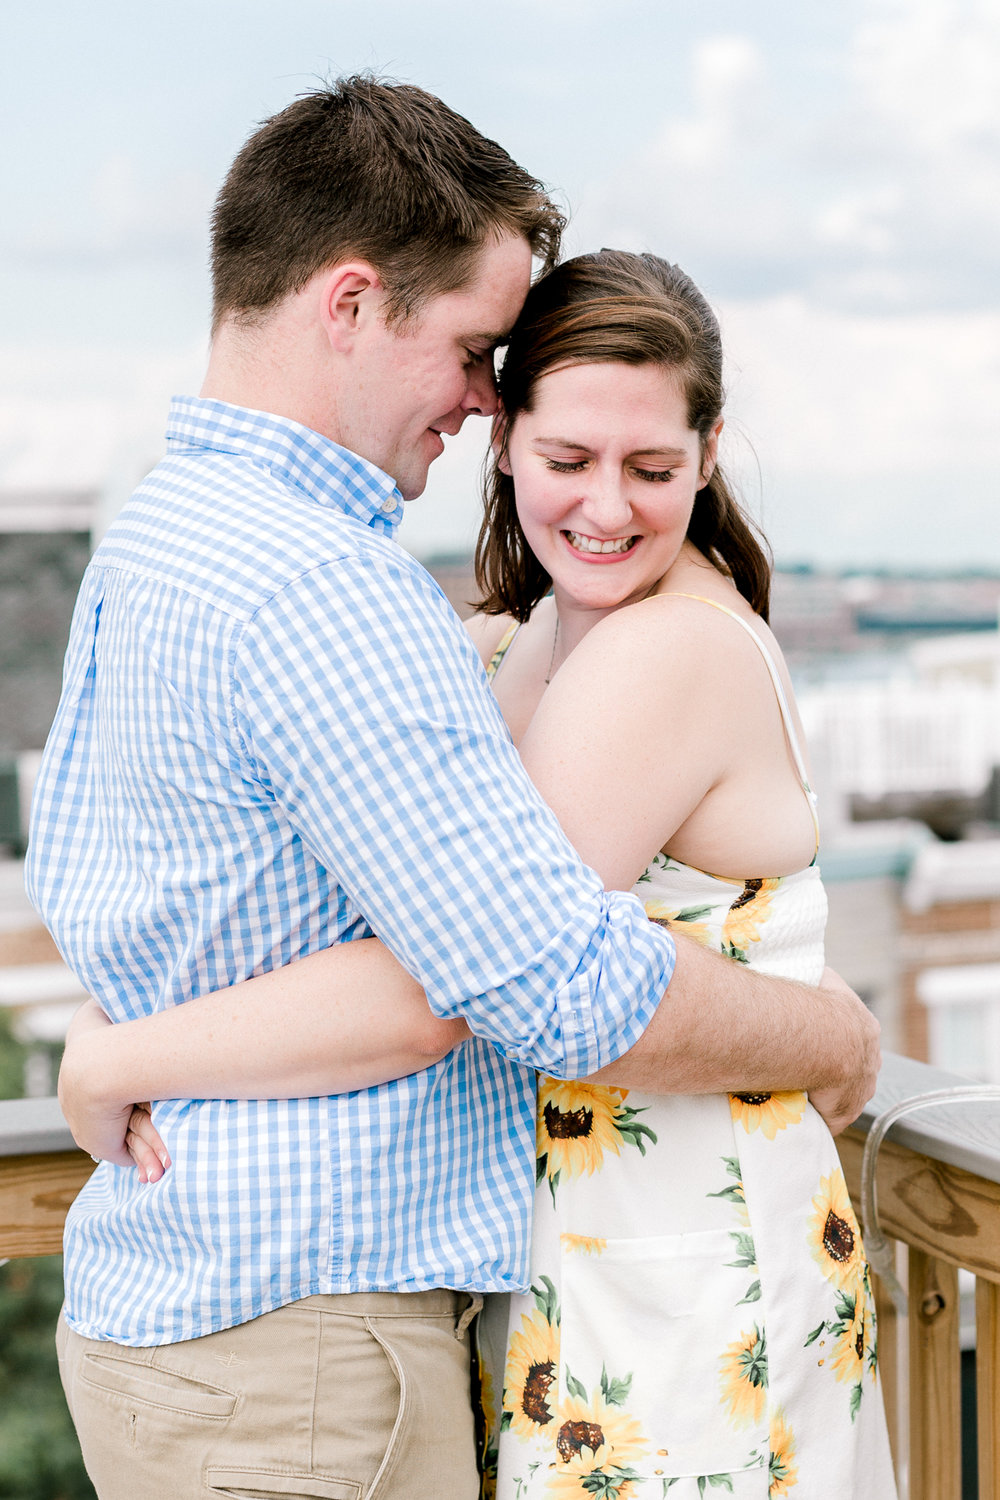 Baltimore Federal Hill Park Stormy Engagement Session Lytle Photo Co (33 of 92).jpg